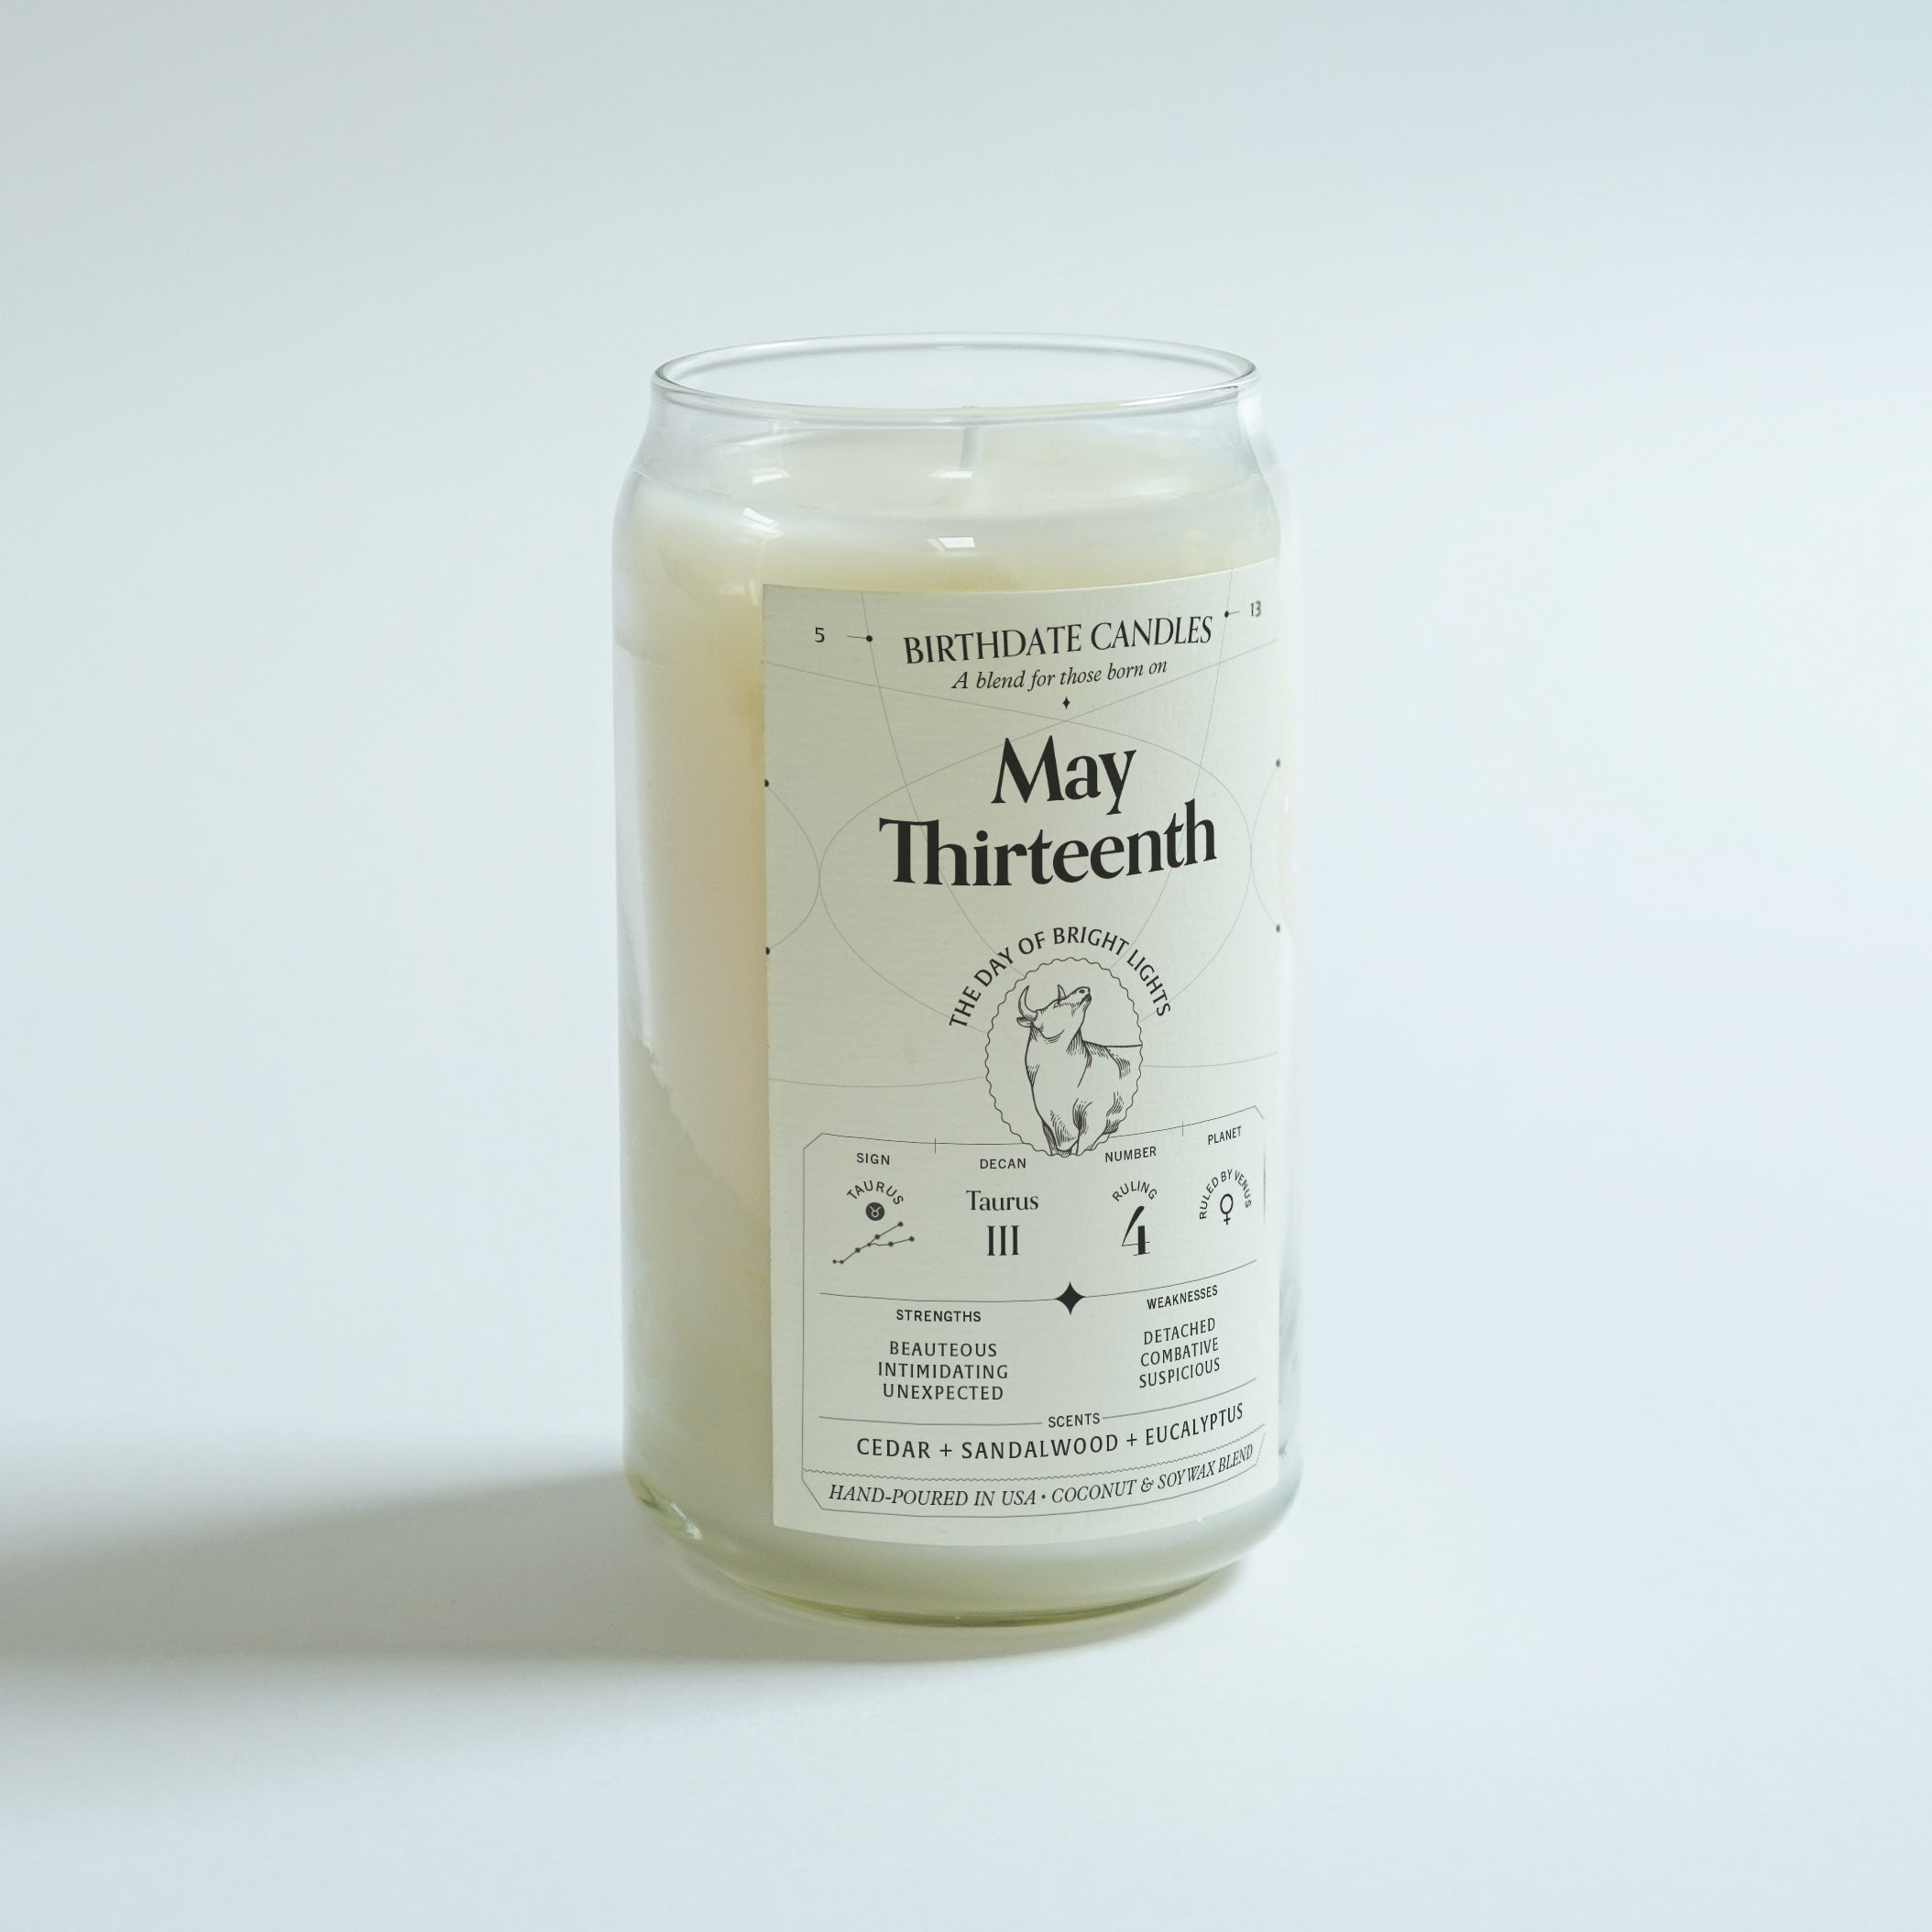 The May Thirteenth Candle